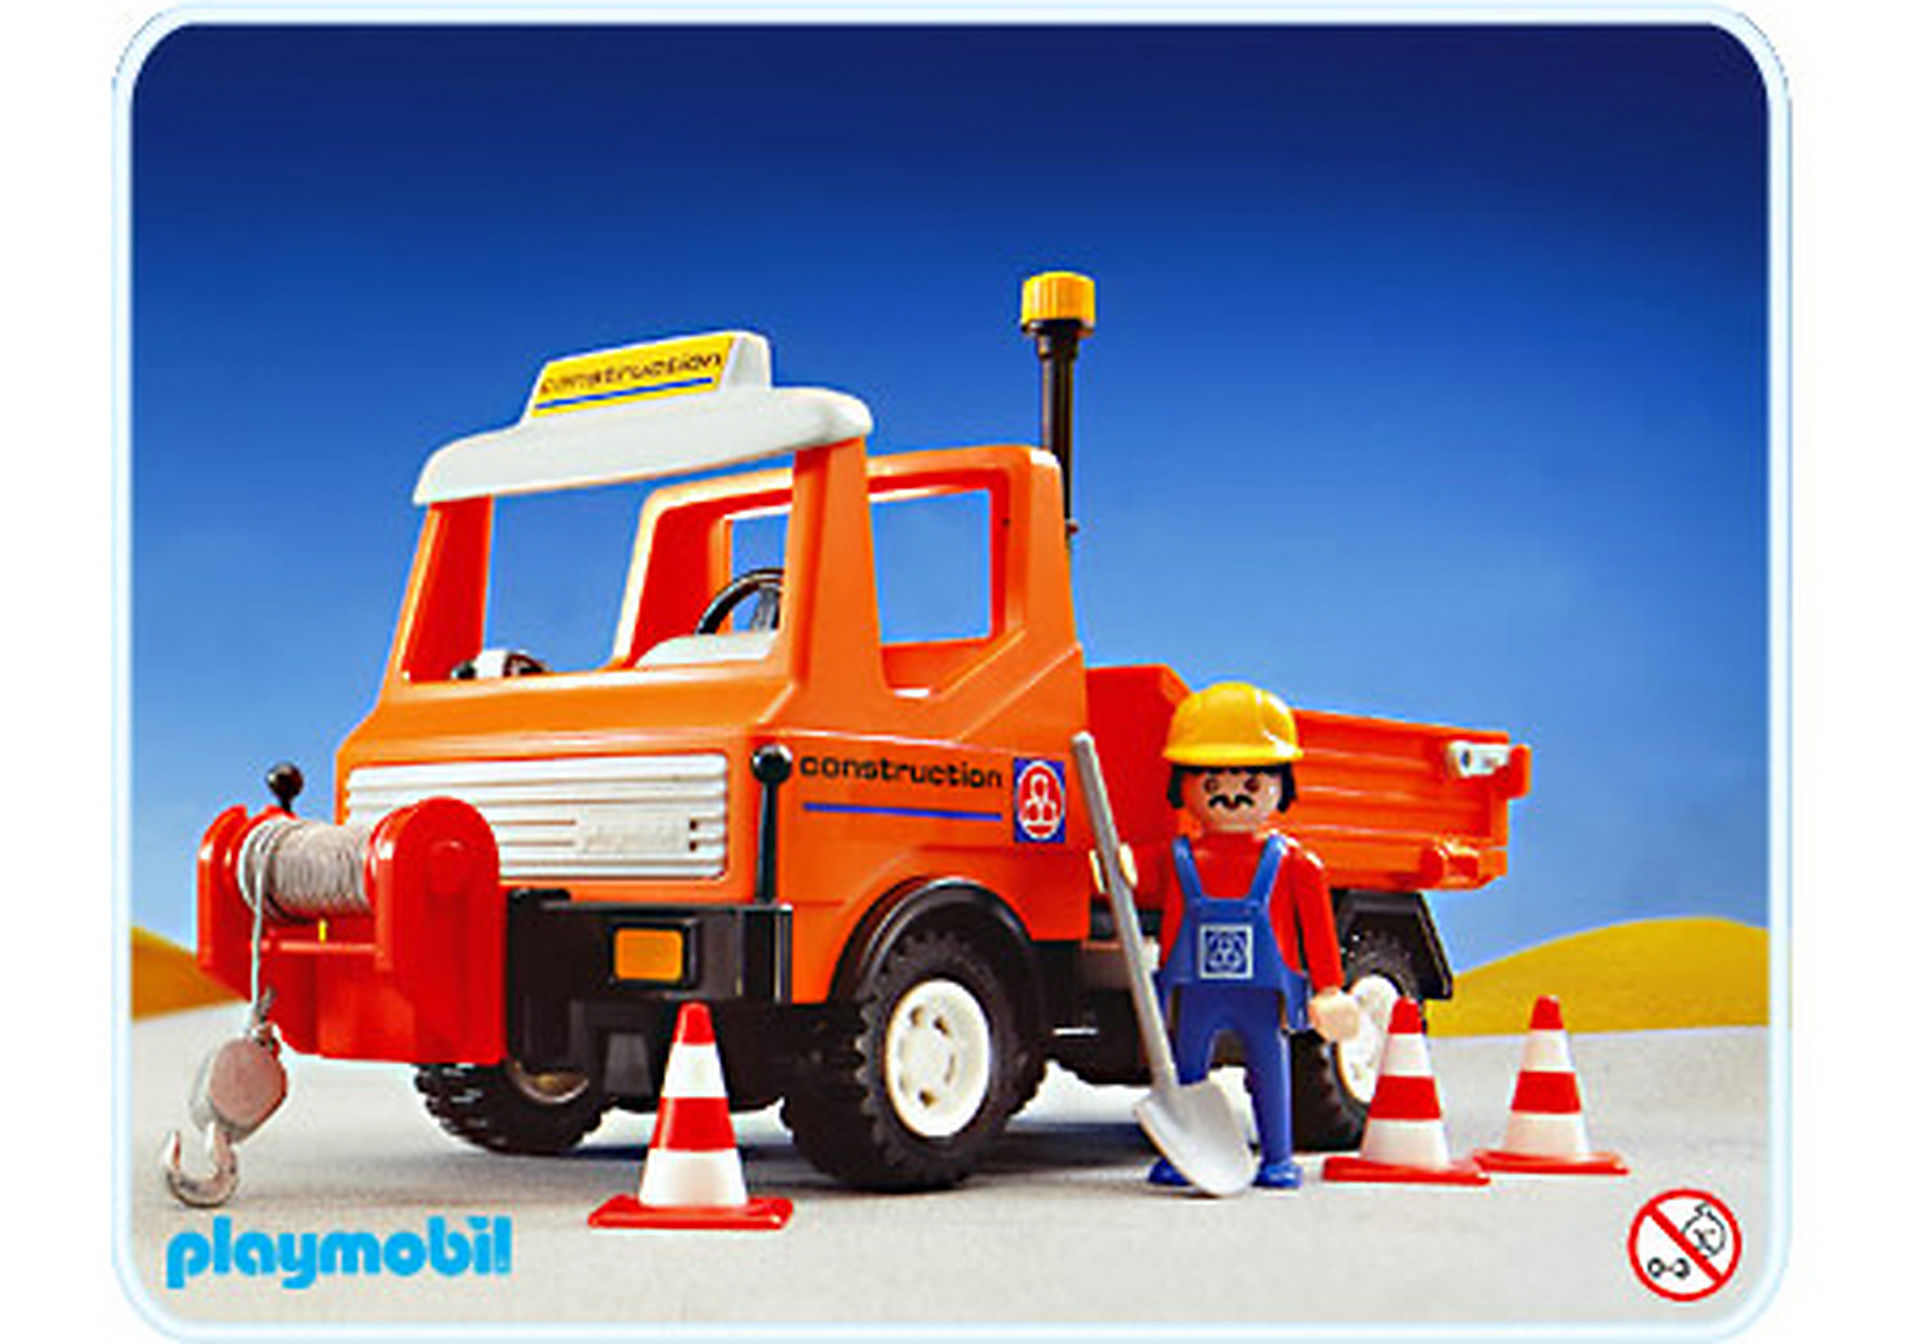 http://media.playmobil.com/i/playmobil/3755-A_product_detail/Camion de chantier